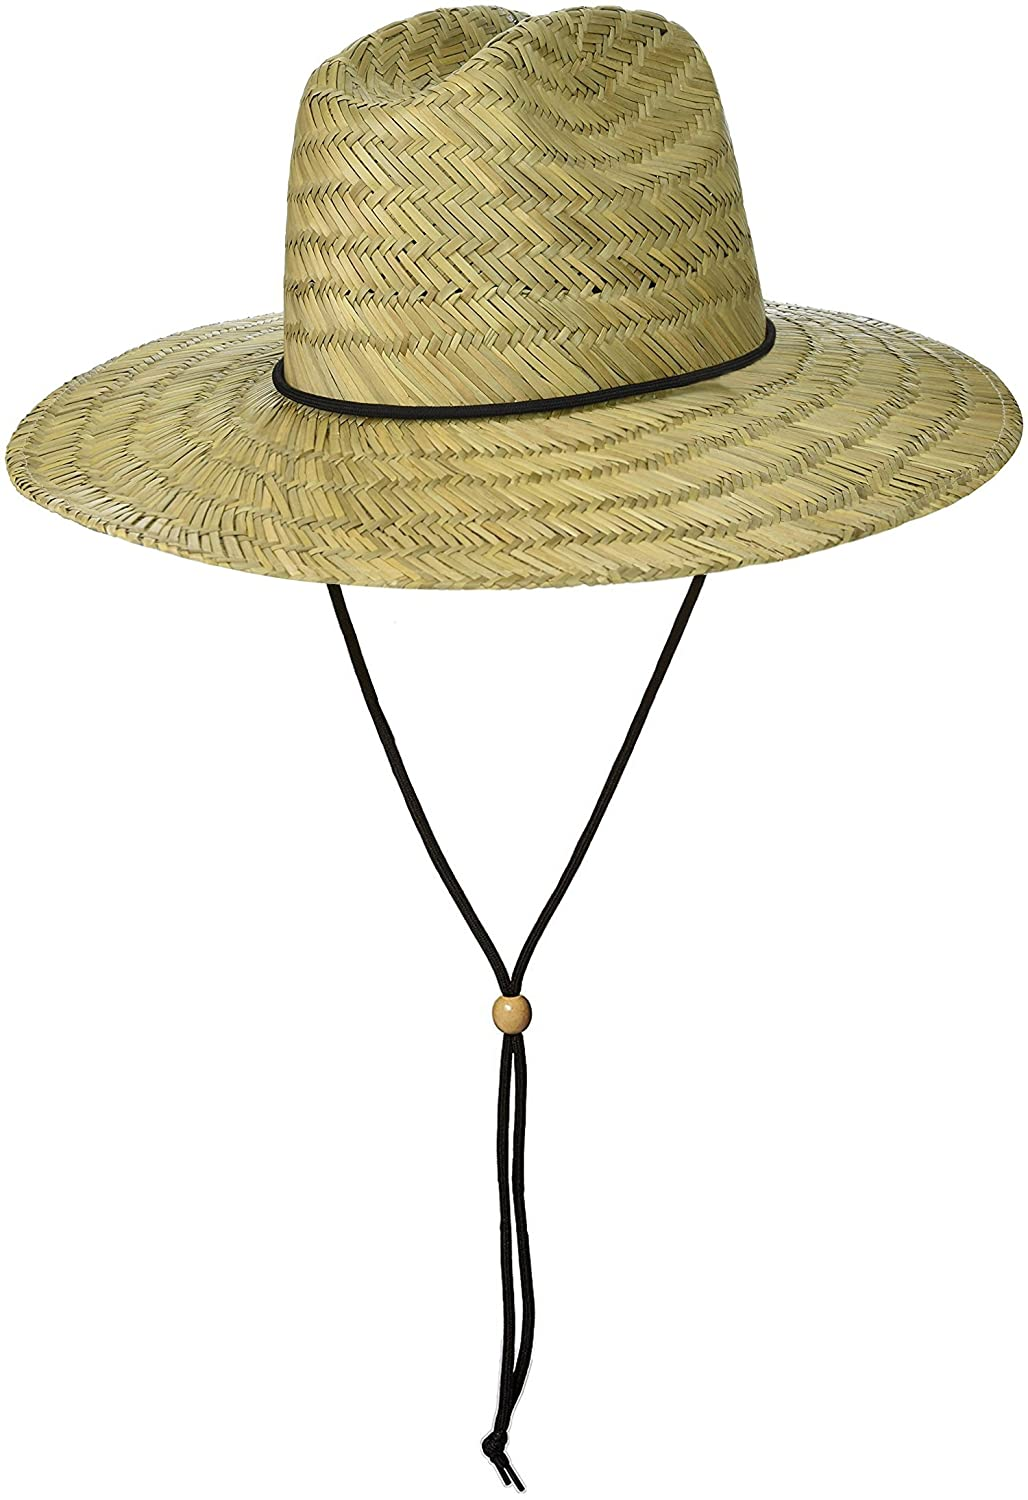 Brooklyn Surf Men's Straw Sun Classic Beach Hat Raffia Wide Brim, Natural, One Size RGM4644A-NAT-OS